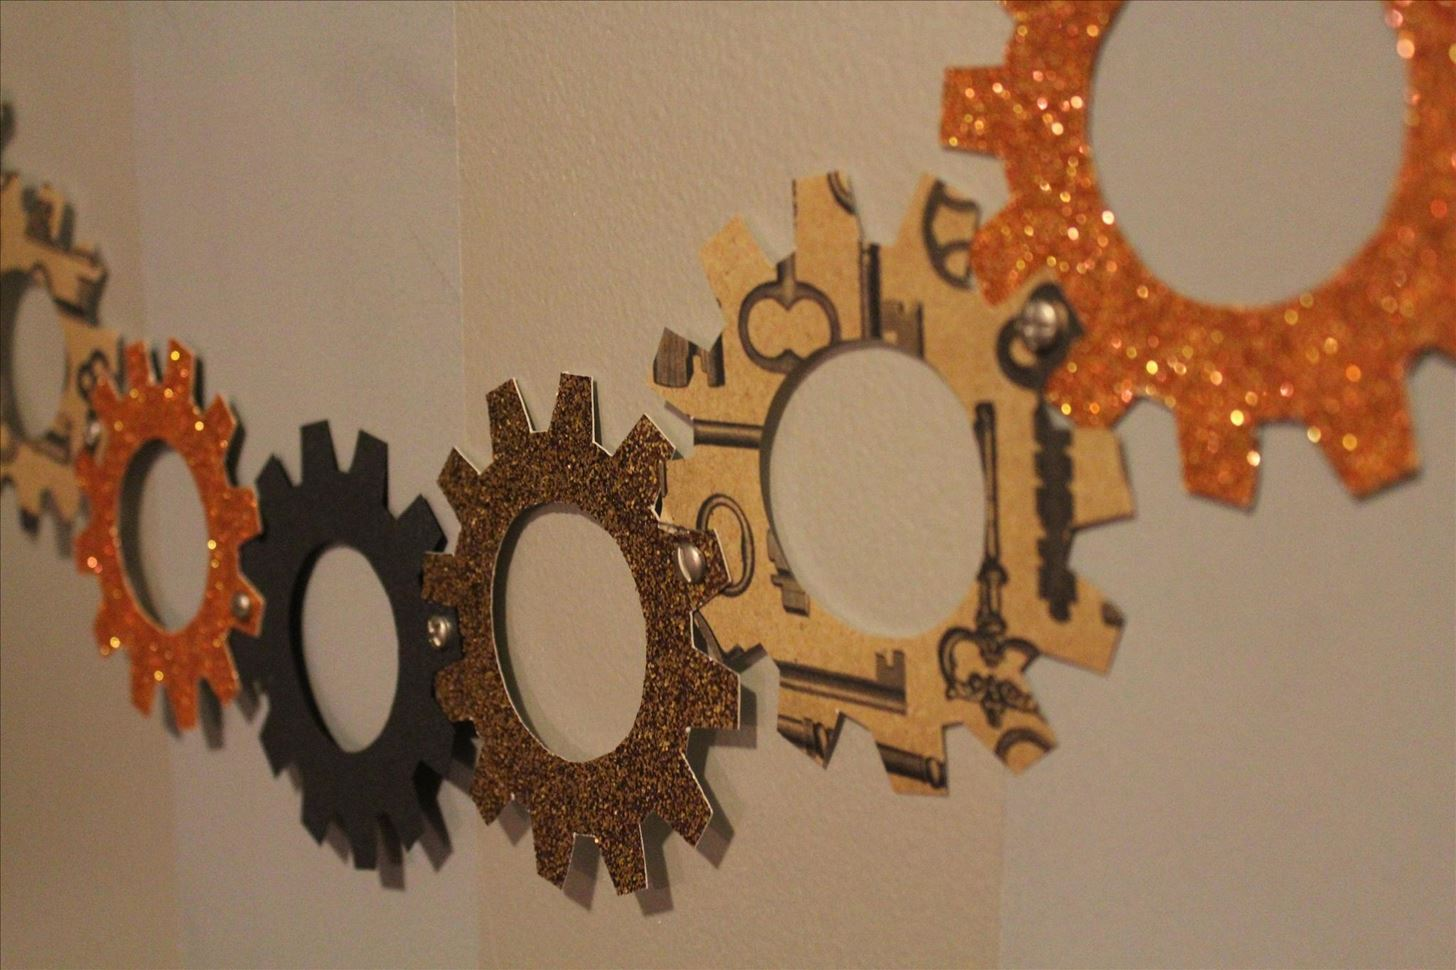 steampunk your halloween decorations with these diy interlocking paper gears steampunk rd wonderhowto - How To Make Paper Halloween Decorations